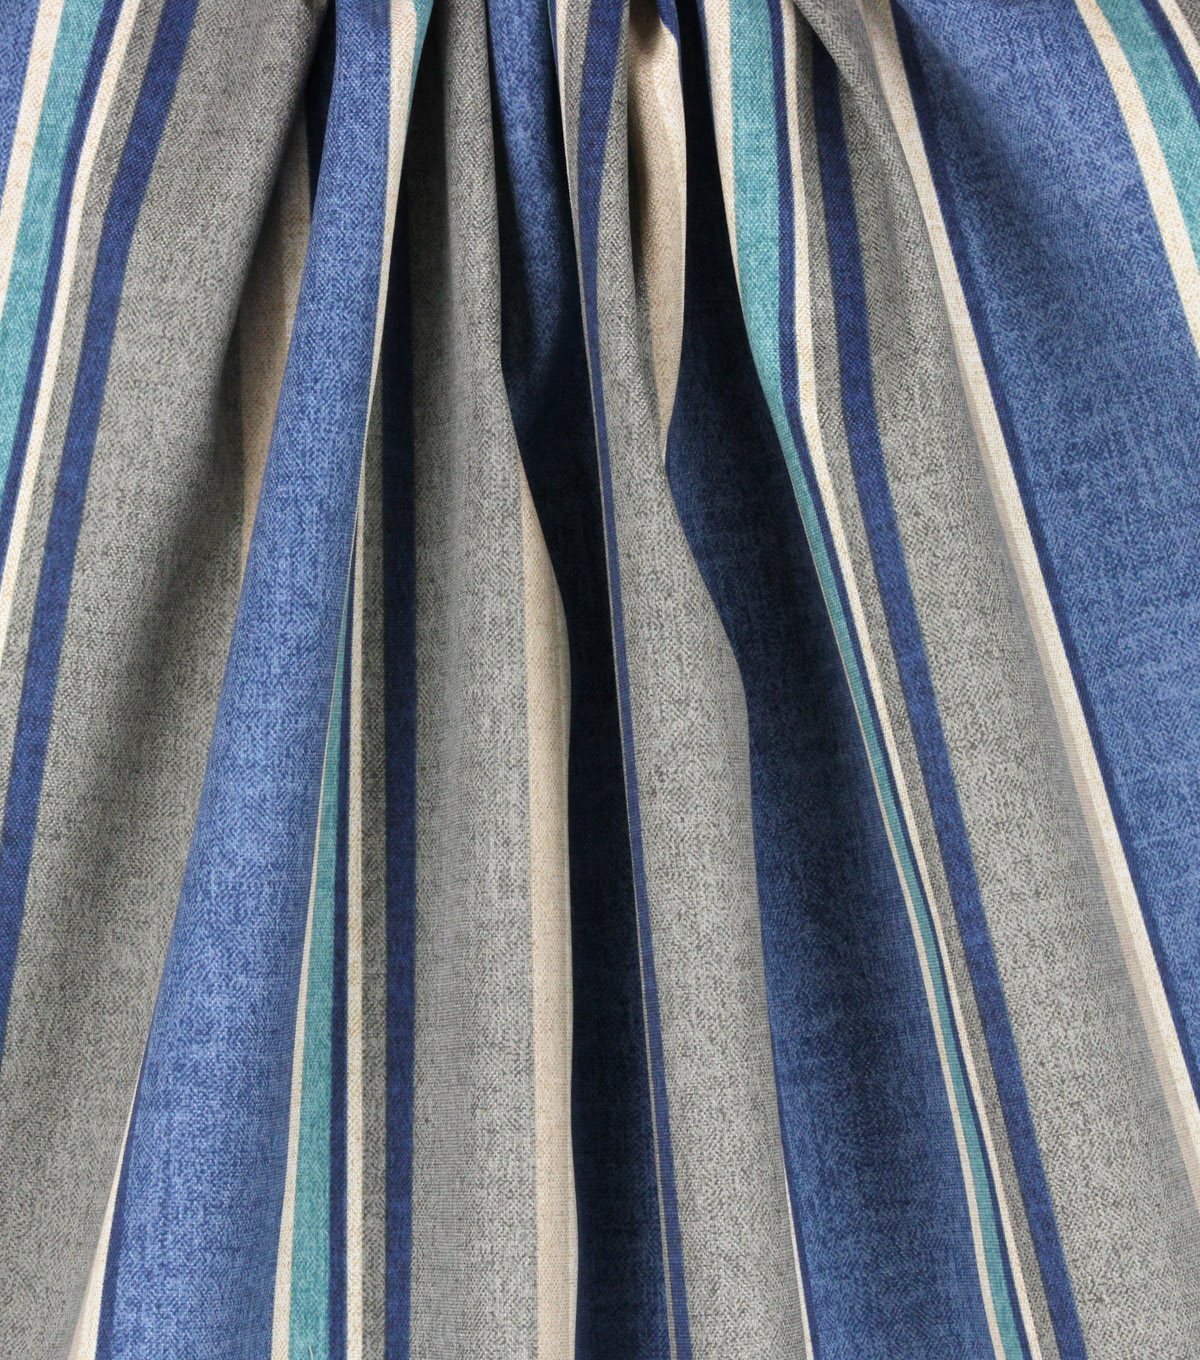 Solarium Outdoor Decor Fabric 54\u0027\u0027-Denim Sovaro